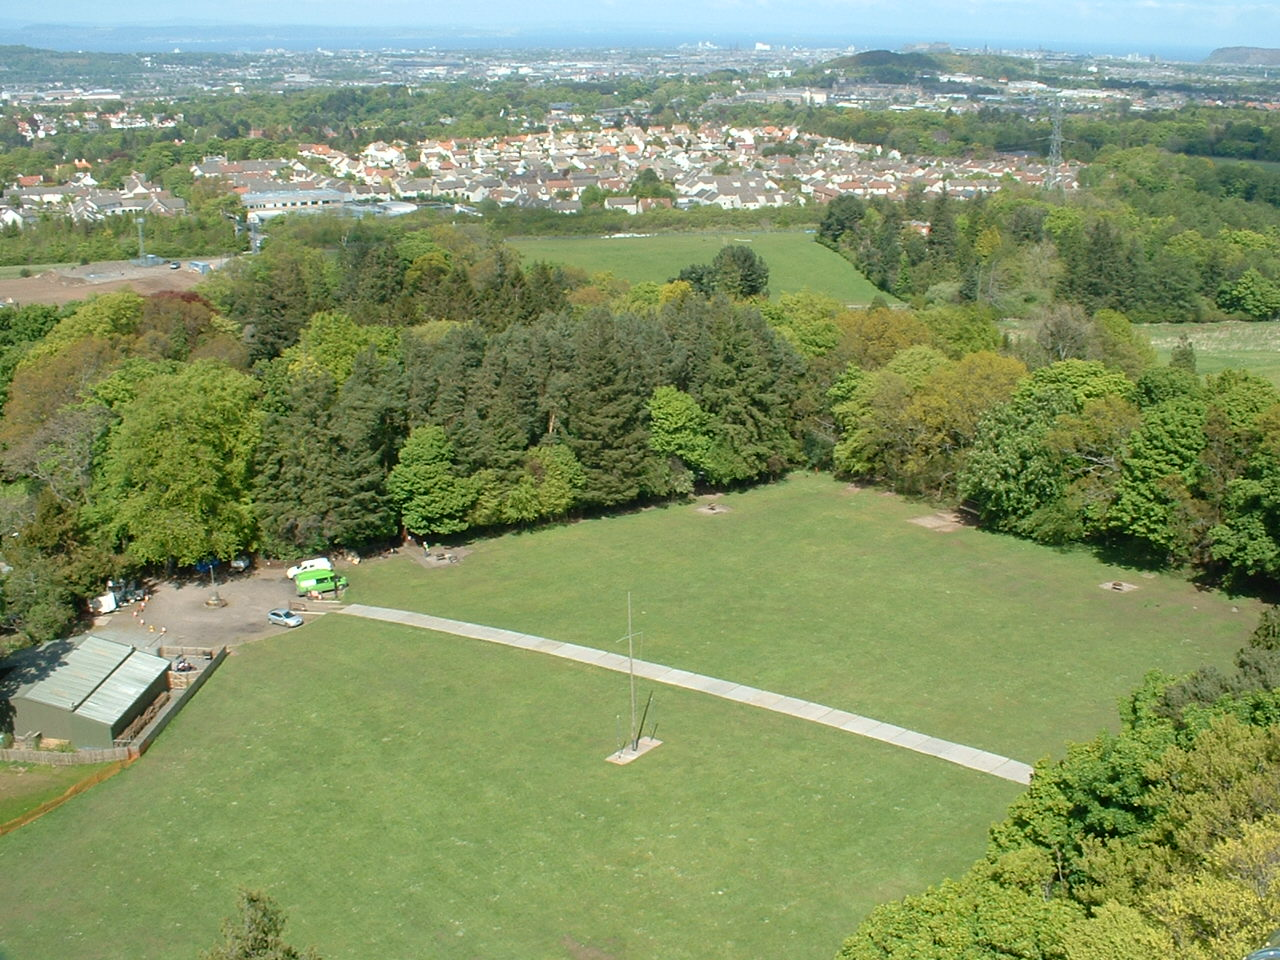 Bonaly site and the city